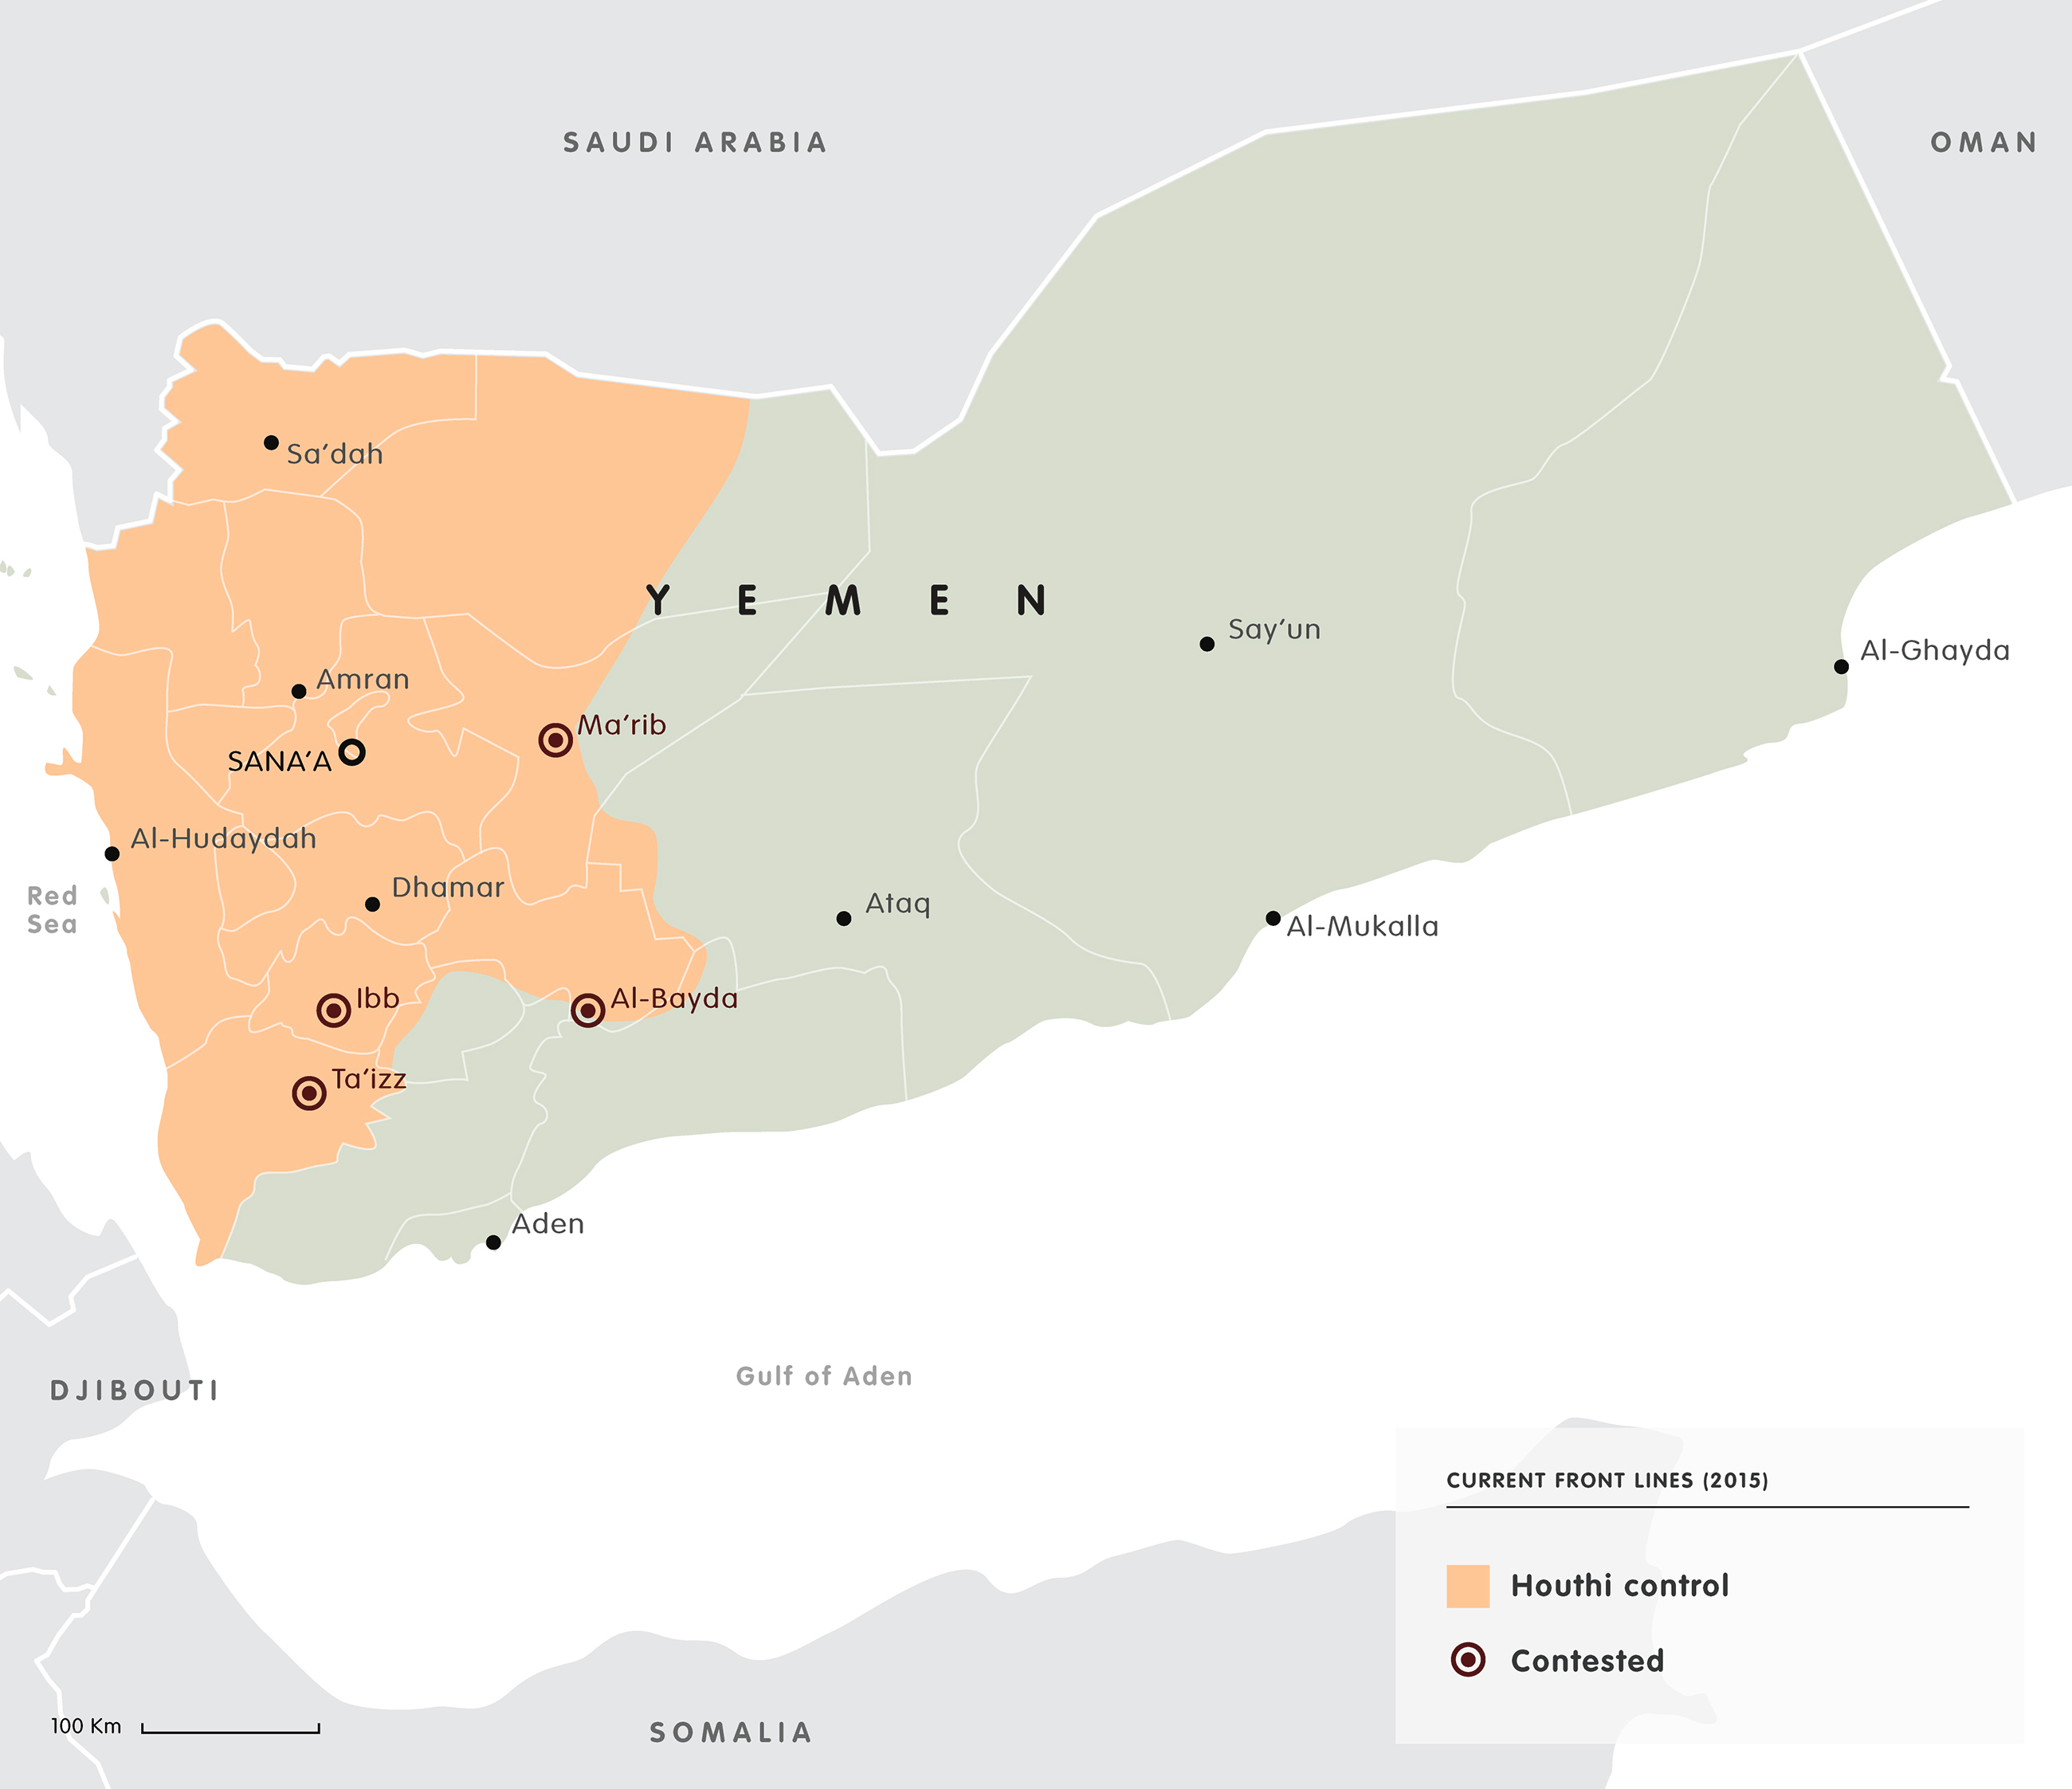 Maps Yemen LibGuides At University Of Illinois At UrbanaChampaign - Yemen maps with countries